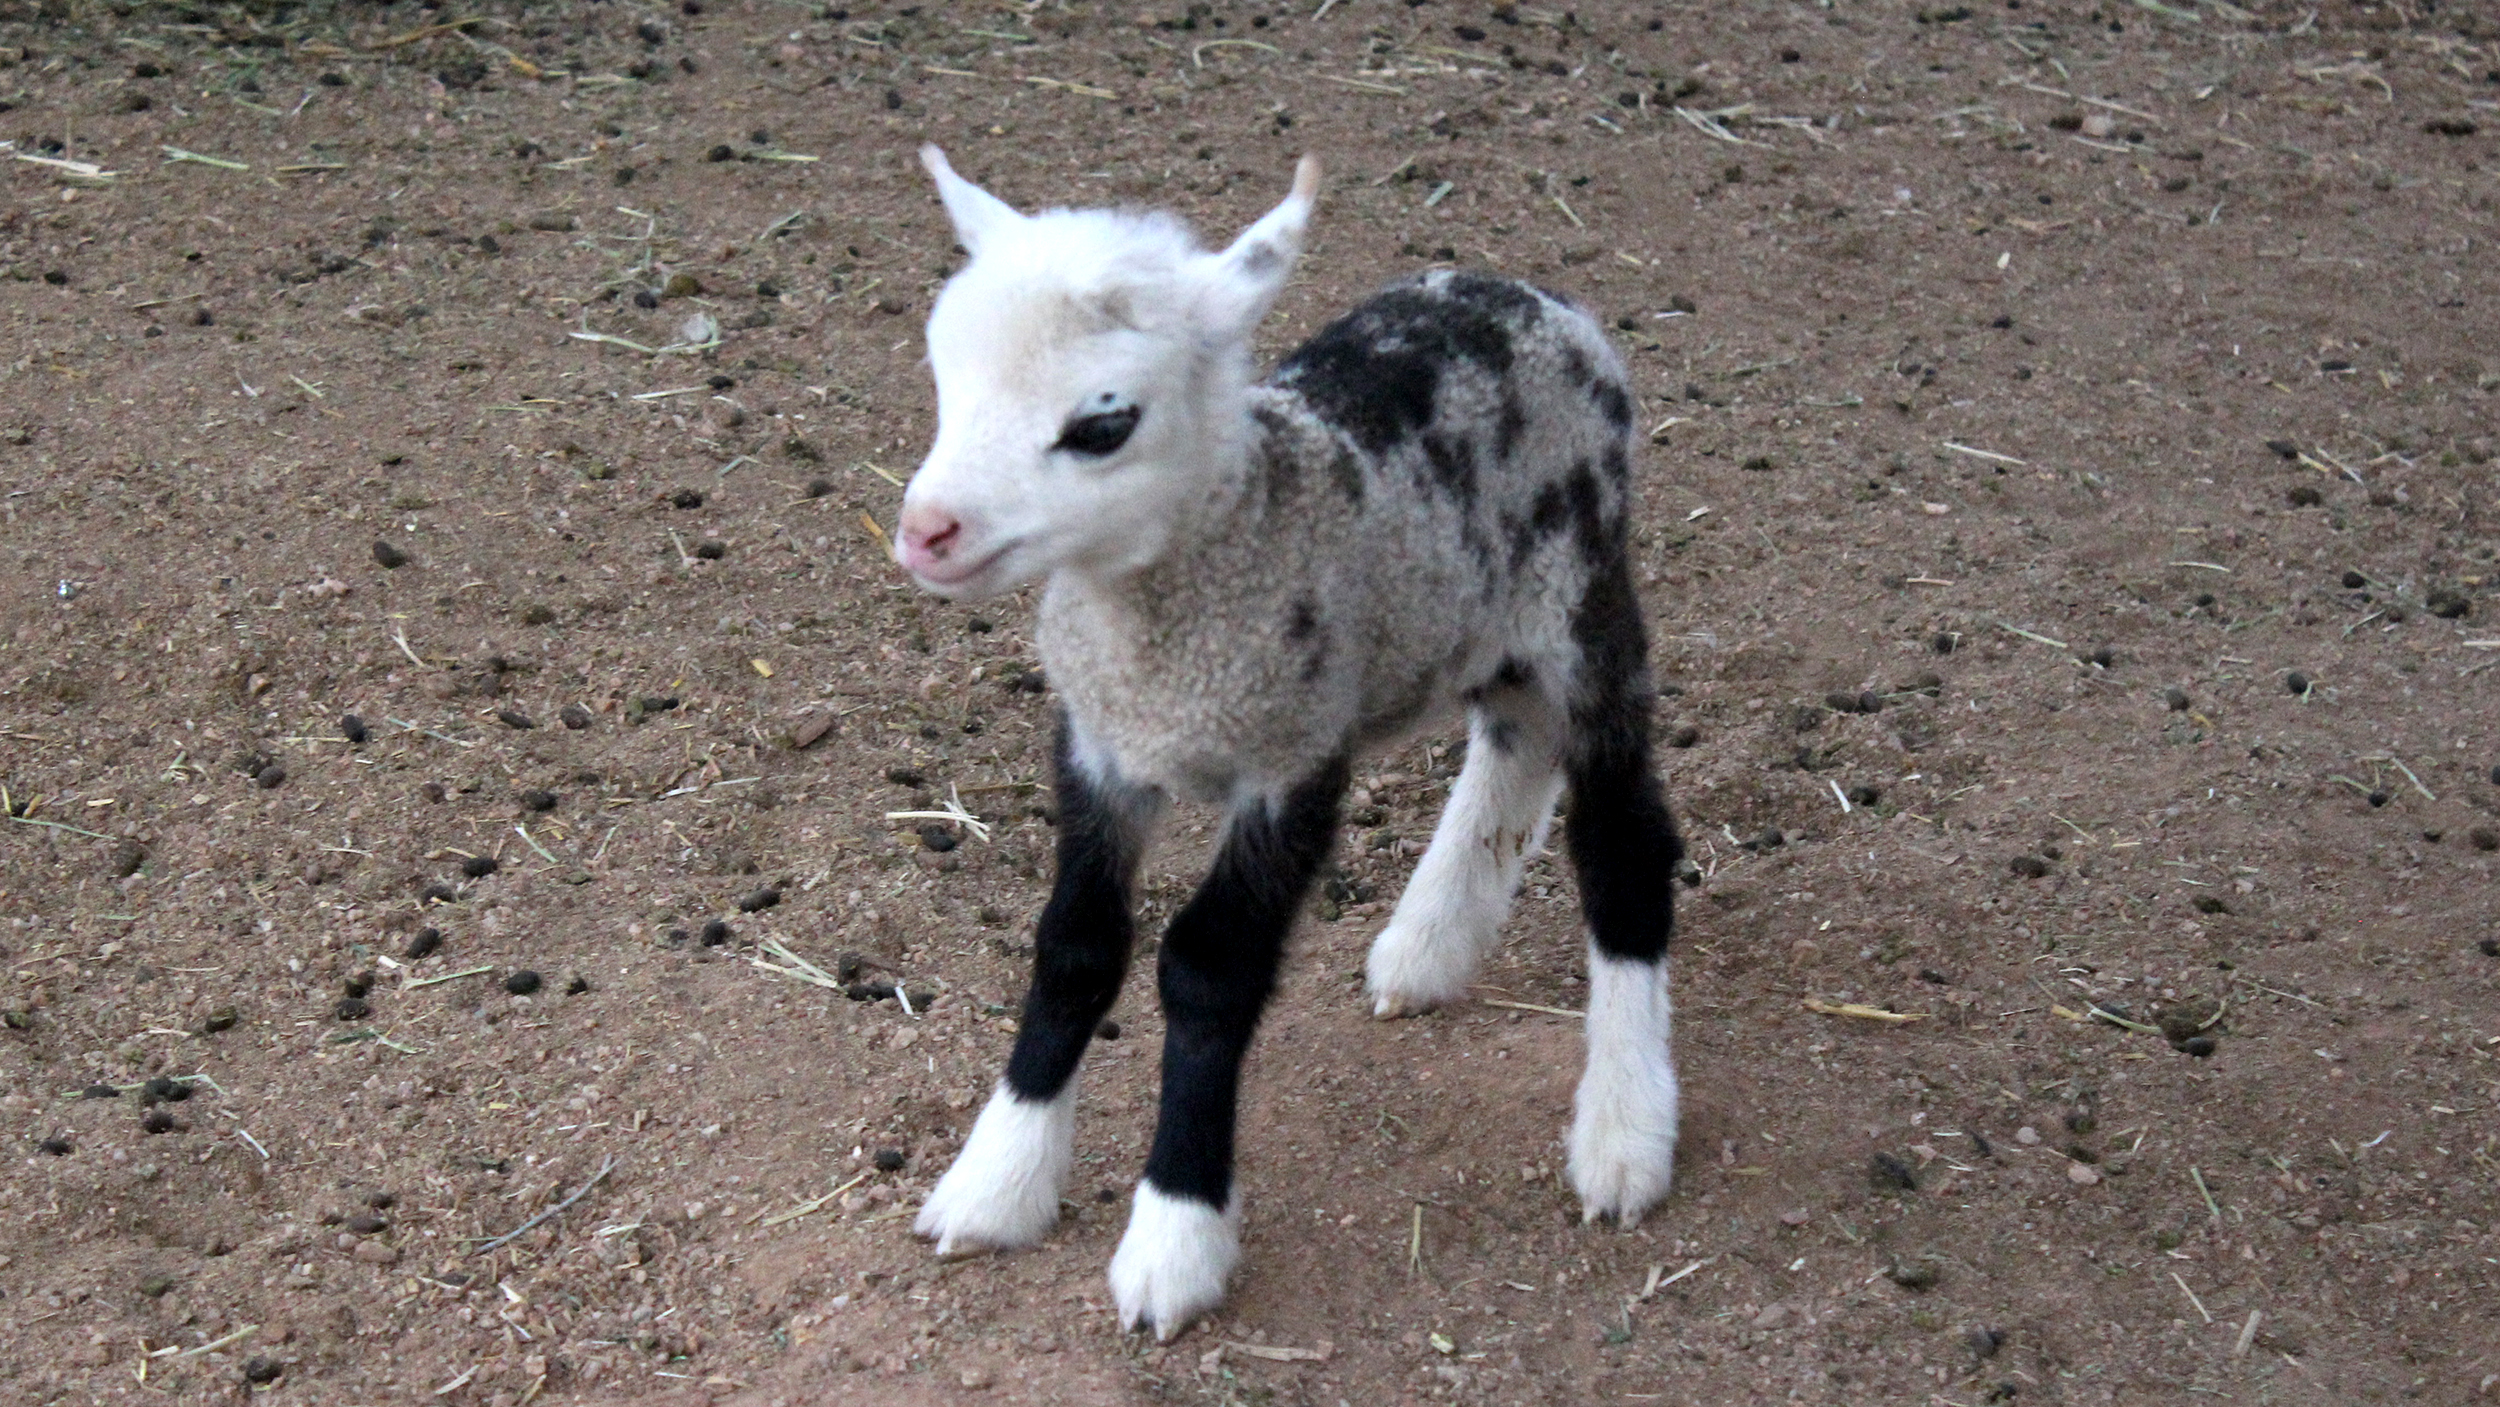 Baby geep, a cross between a goat and a sheep, is stealing ...